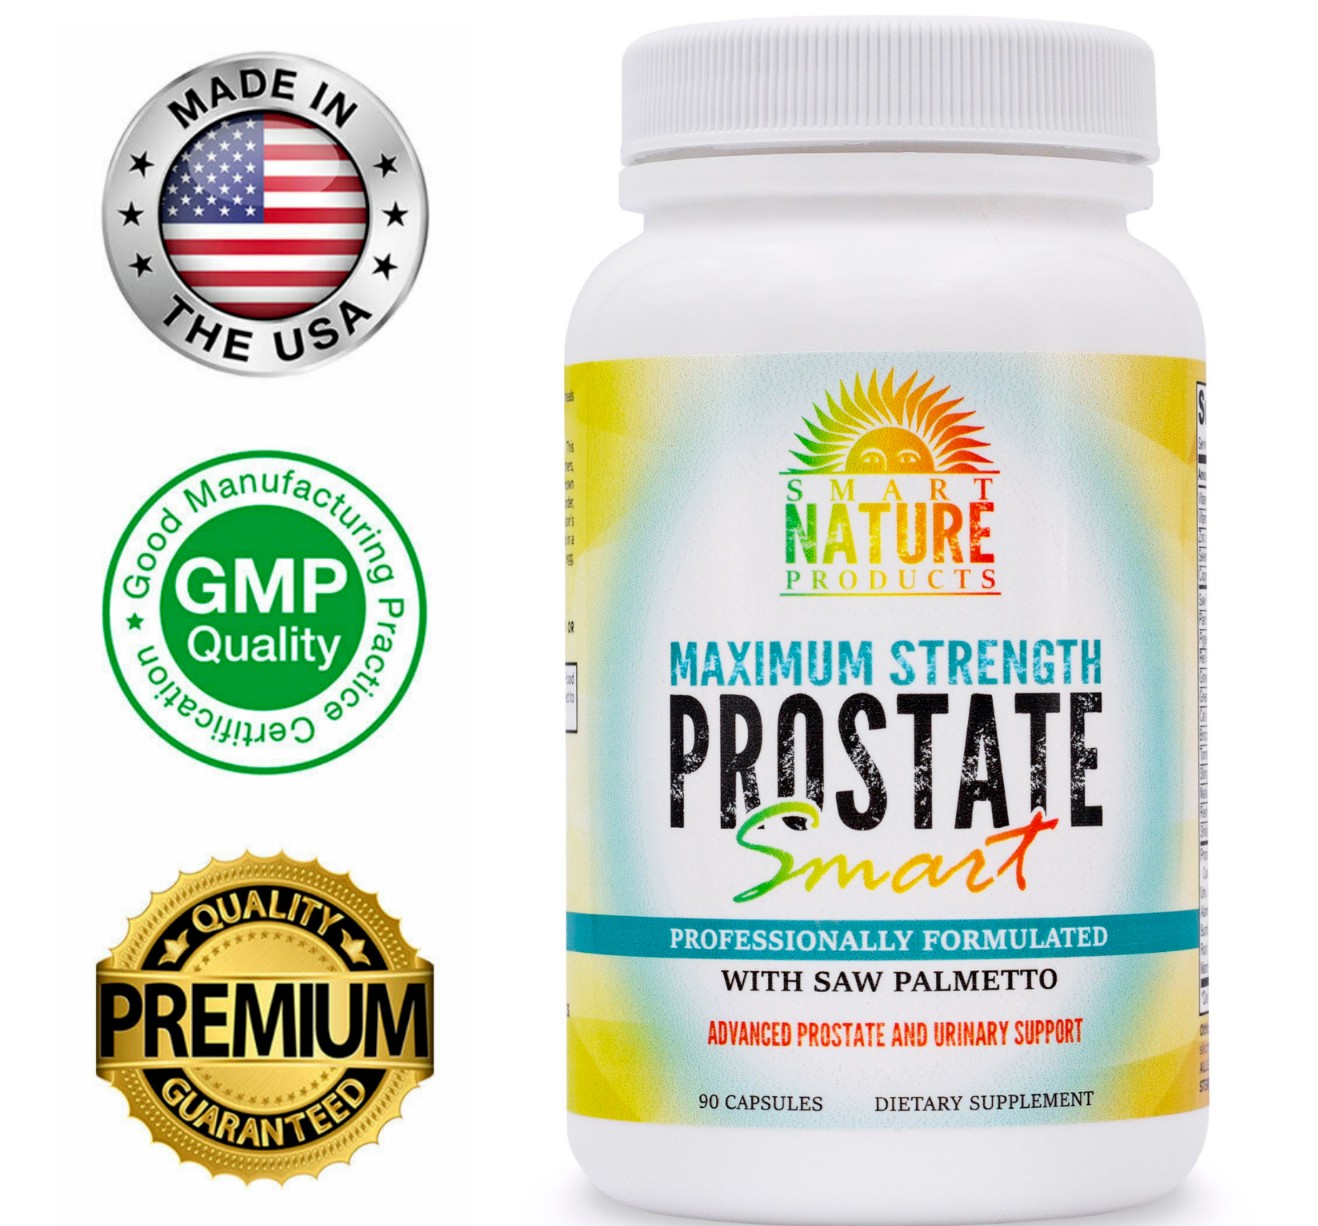 Super Smart Prostate Supplement Reduce Frequent Urges to Urinate w/FREE BOTTLE